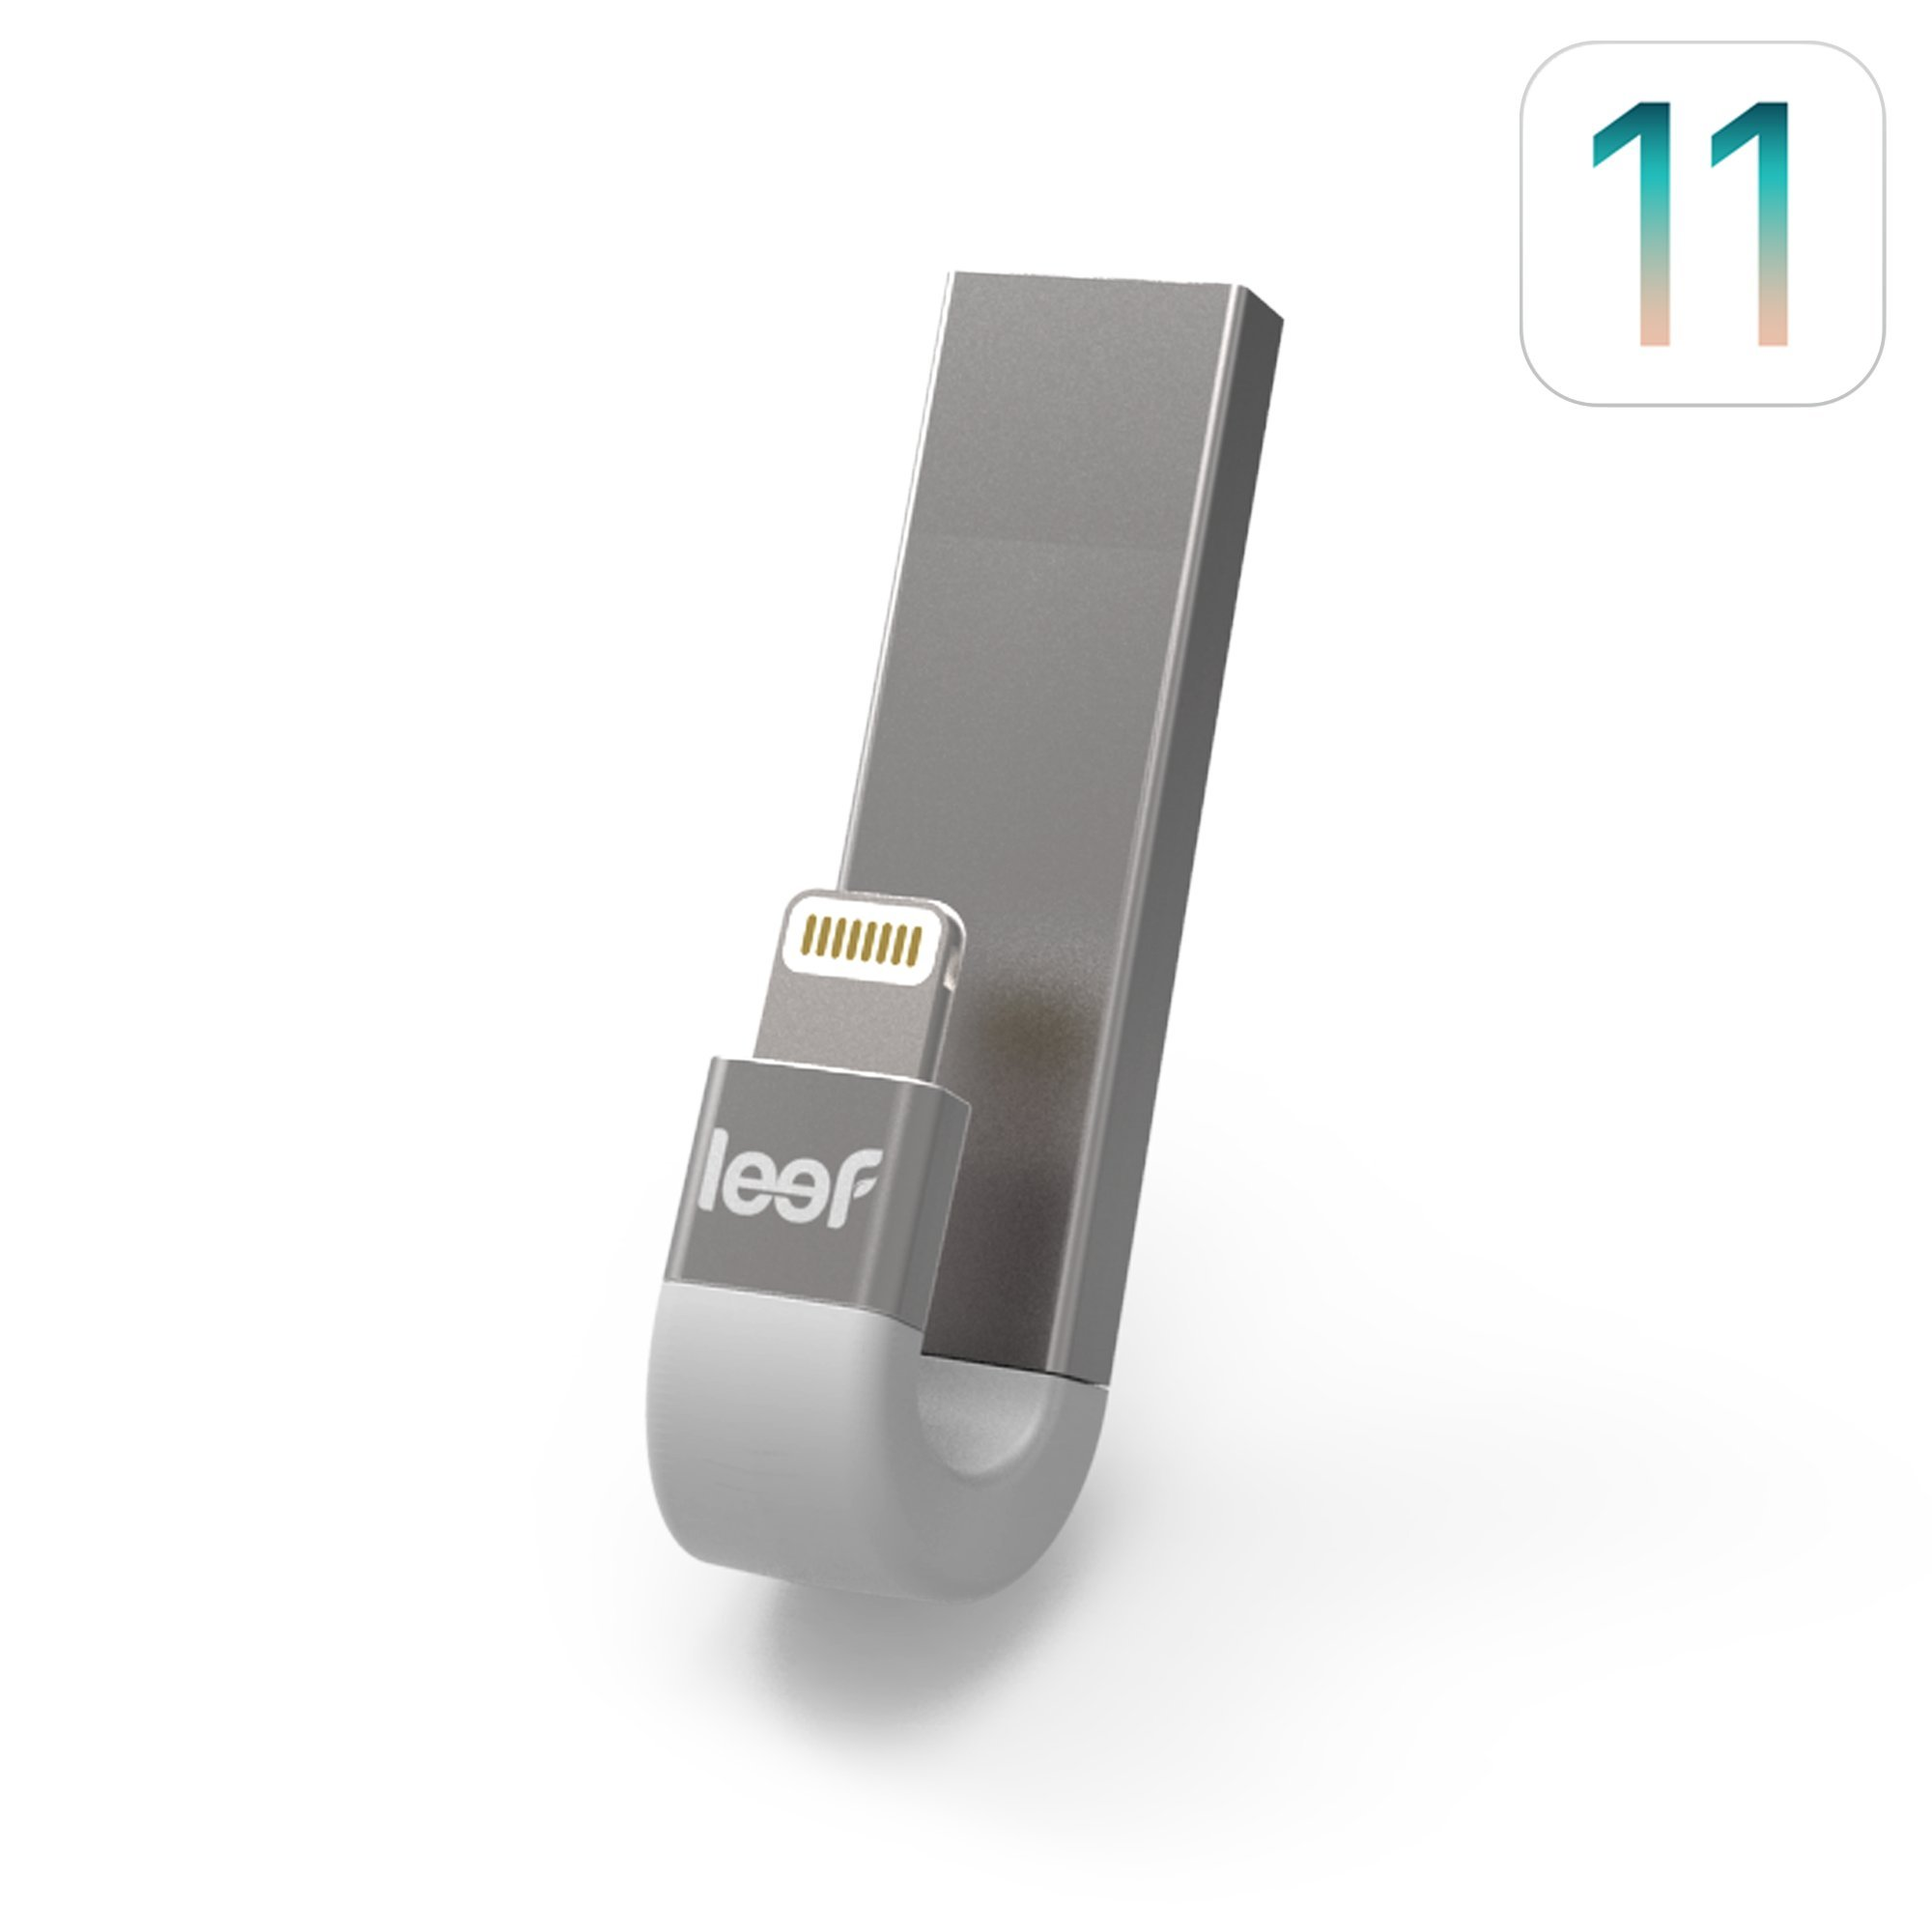 Leef iBridge 3 - iPhone Flash Drive 128GB (Silver White) - Expanded Memory for iPhone and iPad by Leef